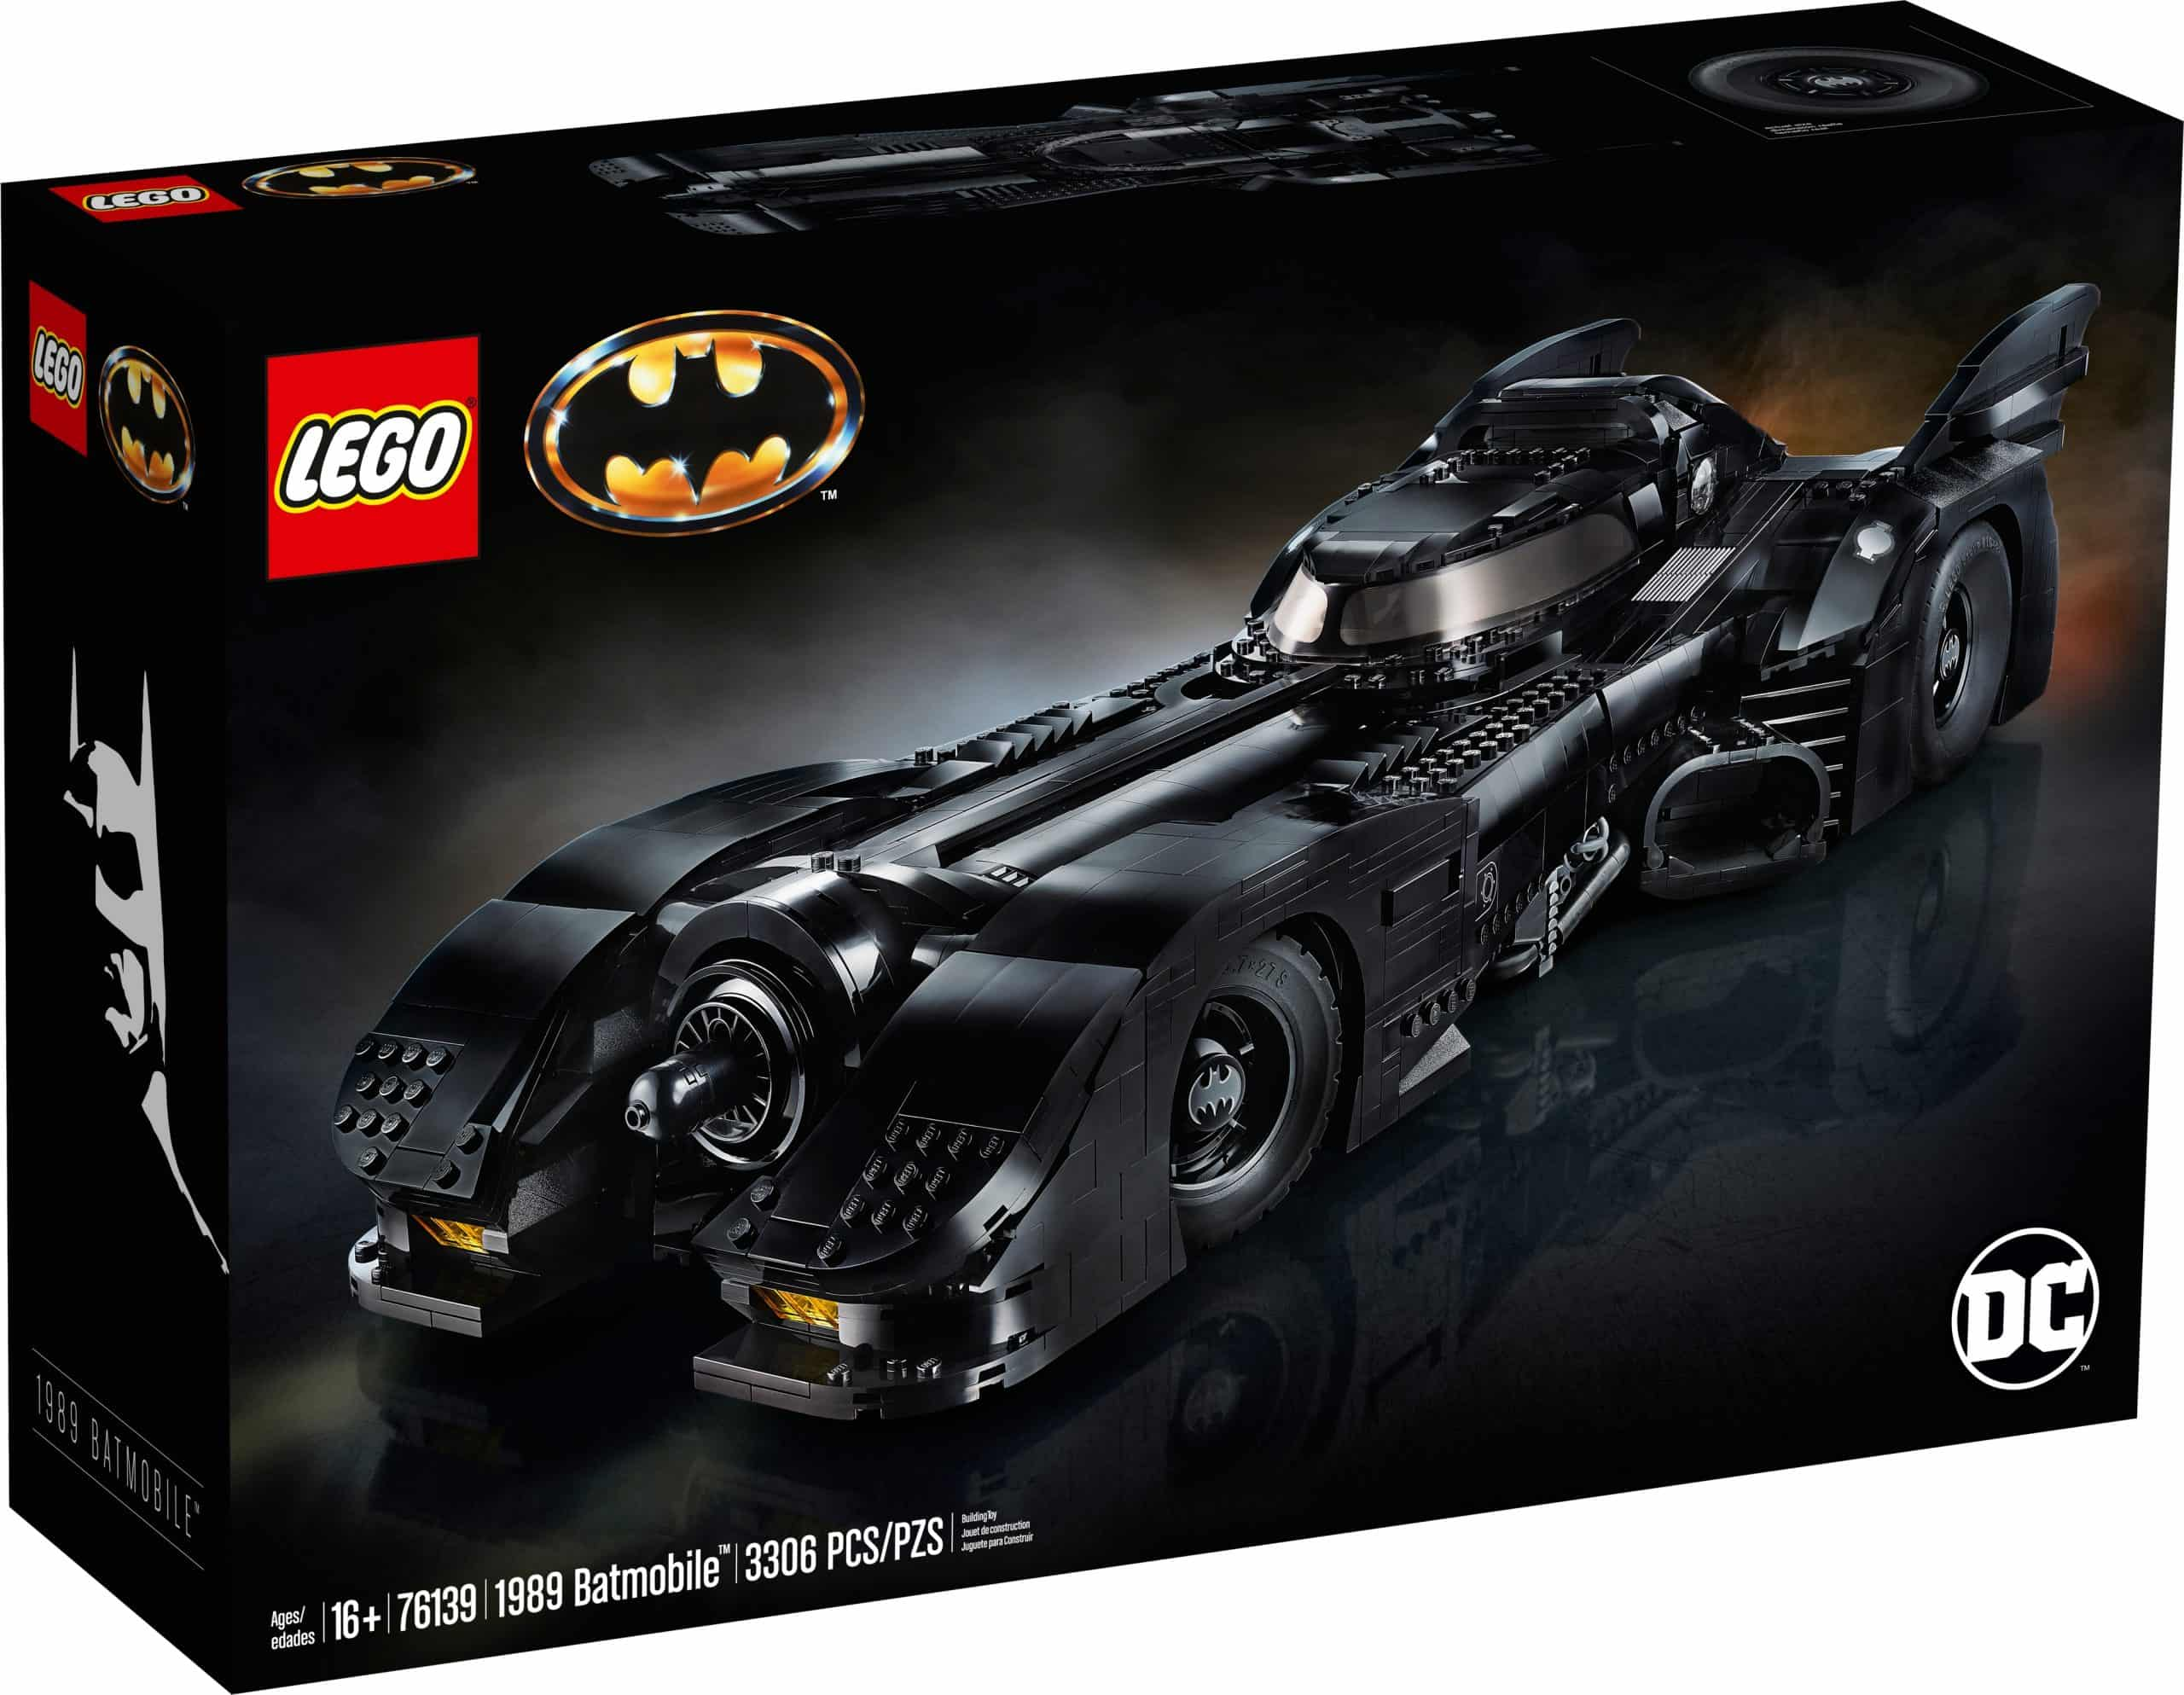 lego 76139 1989 batmobile scaled